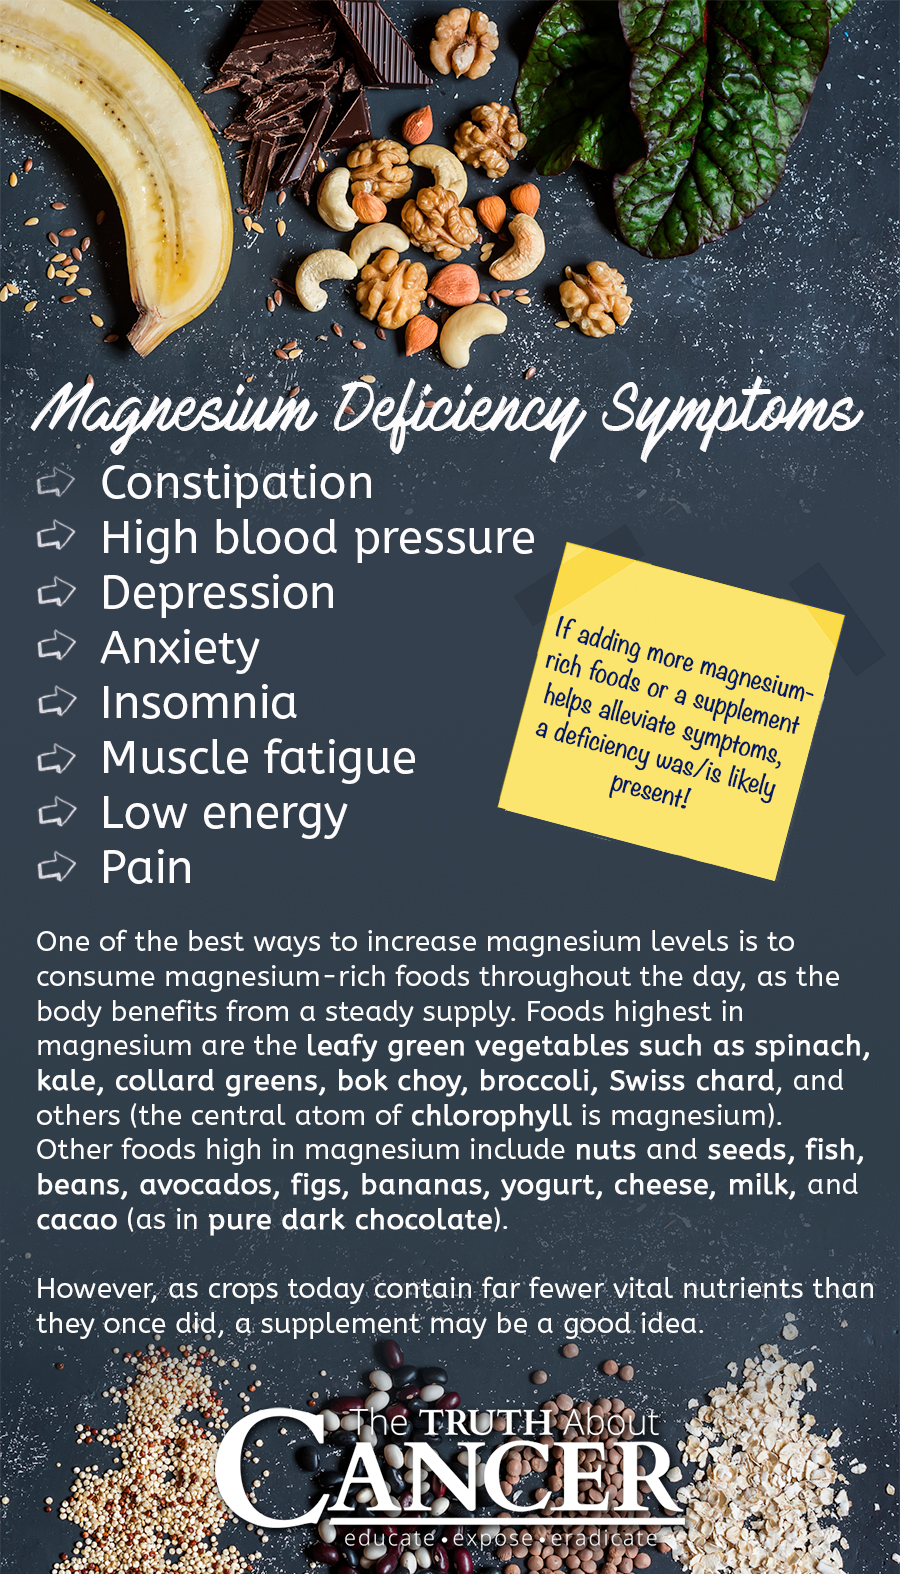 magnesium-deficiency-symptoms-list